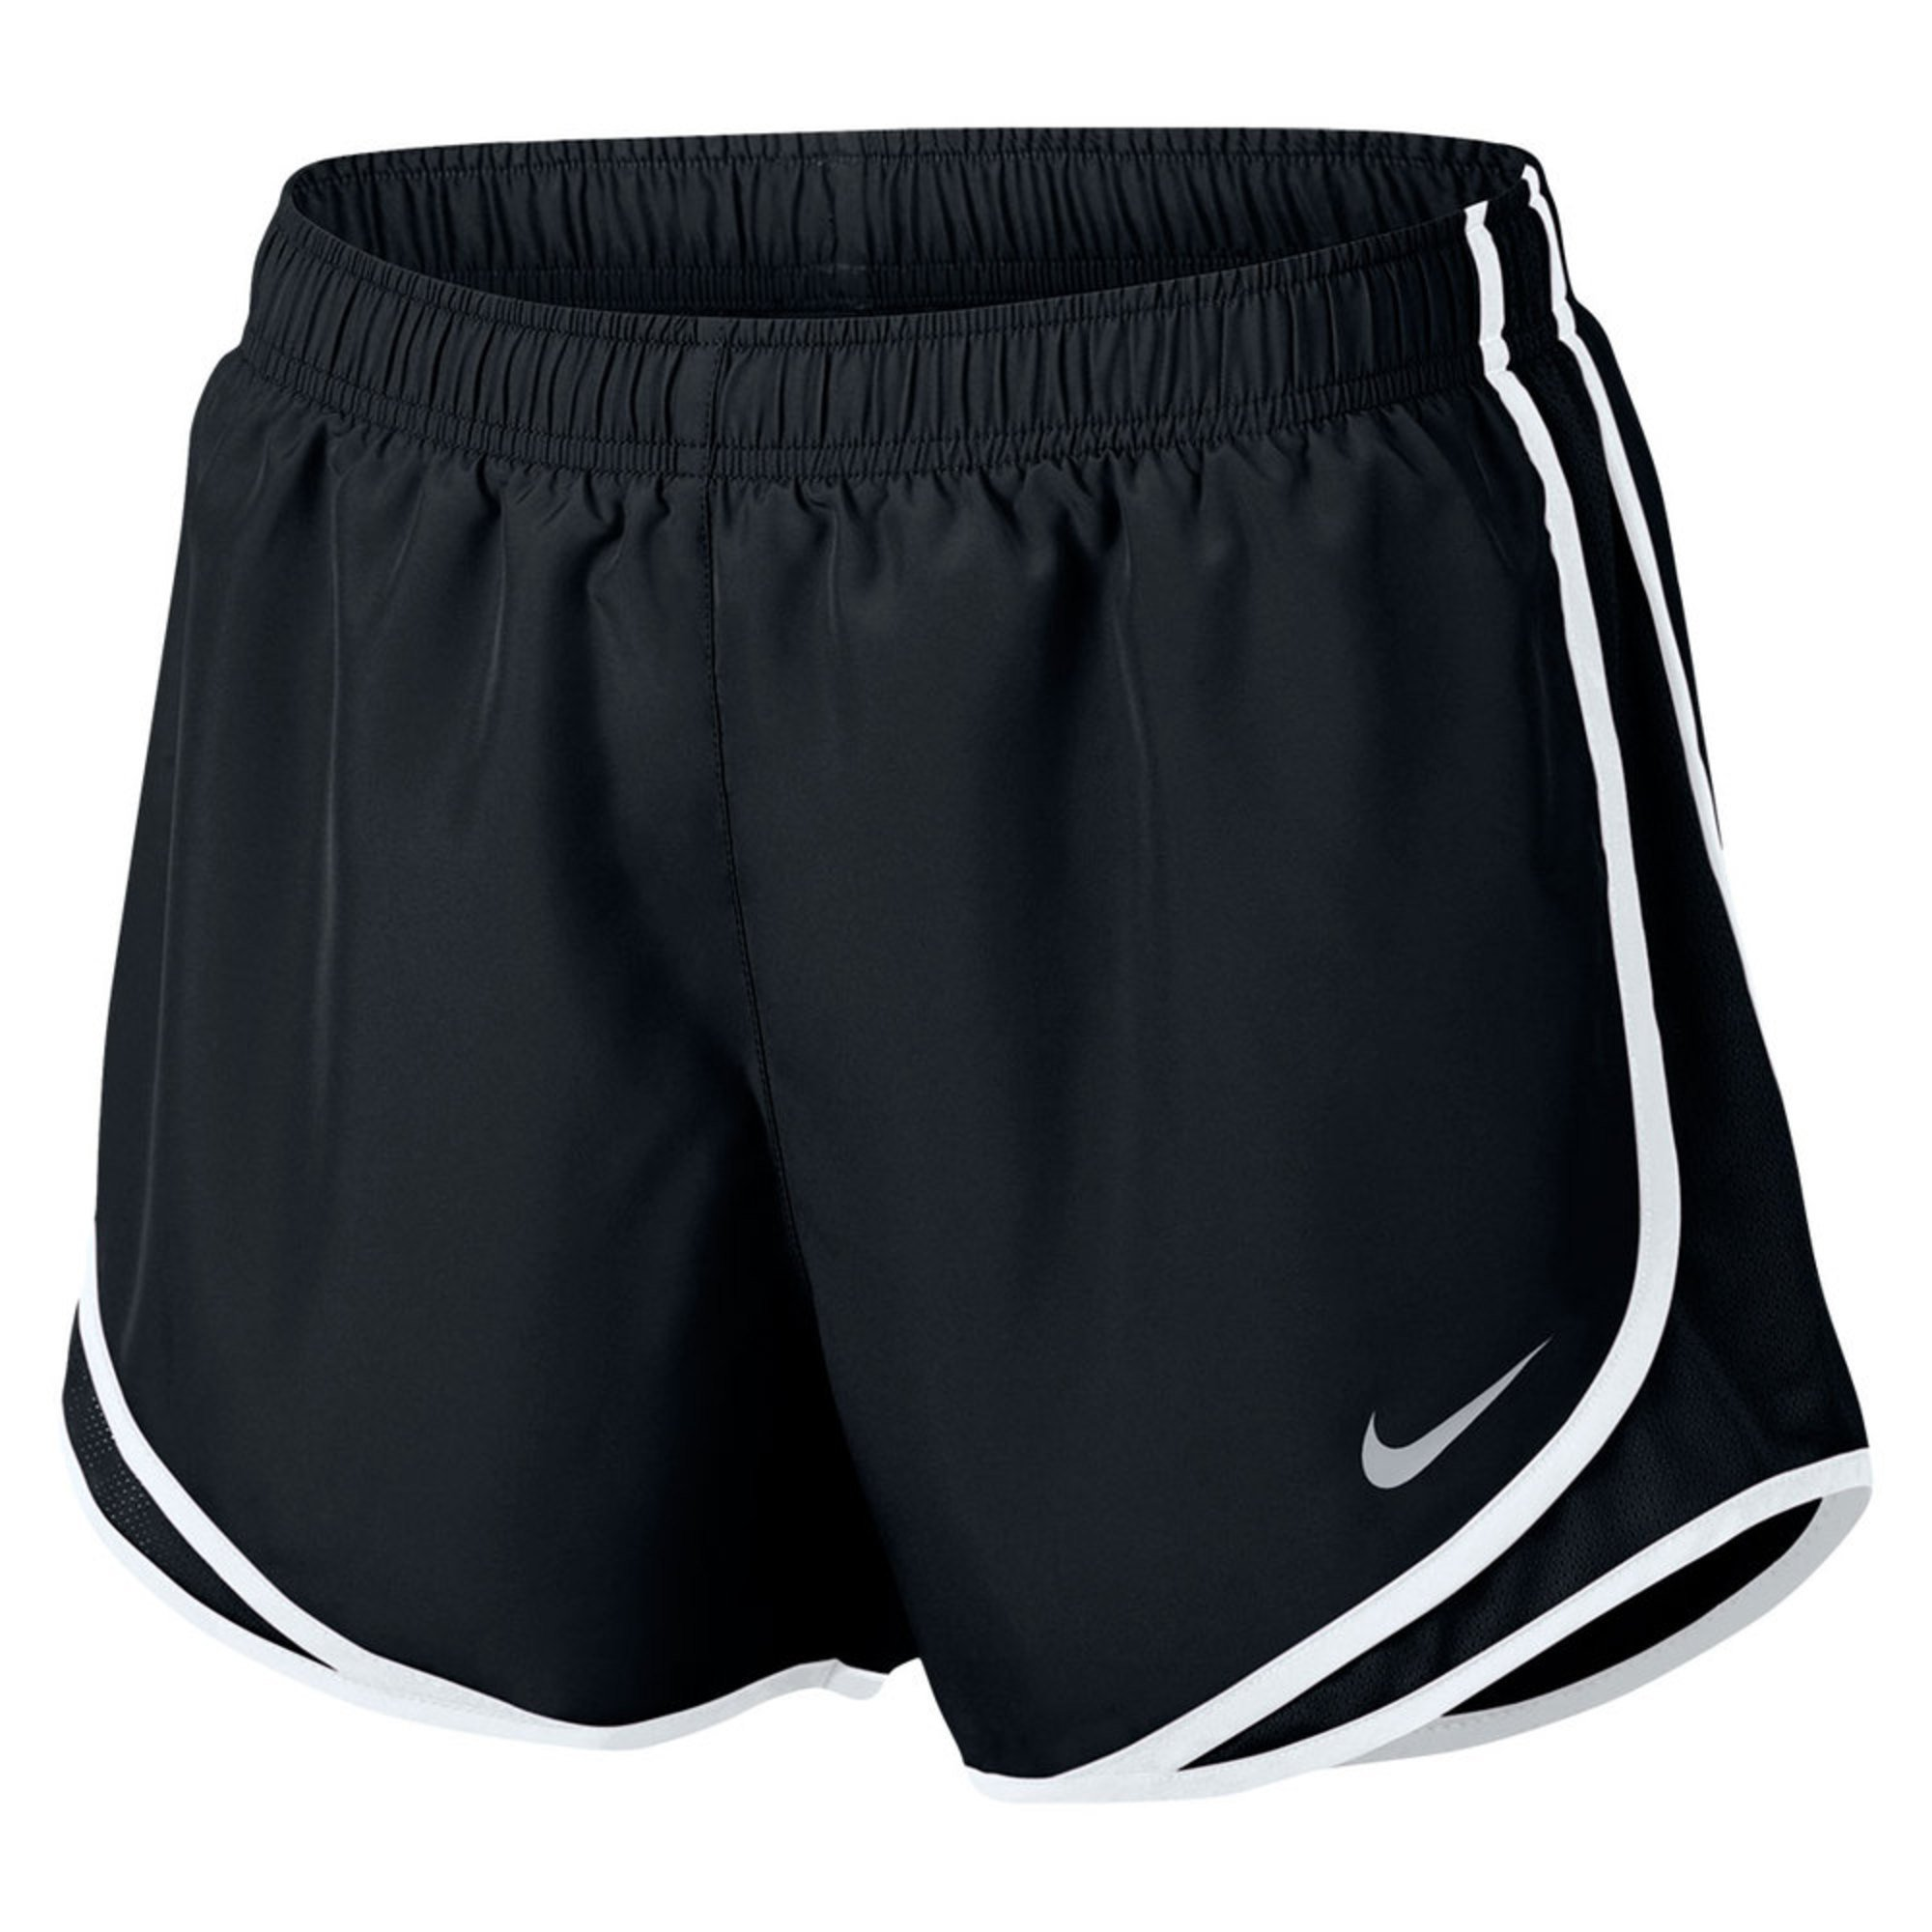 Nike Women's Dry Tempo Track Shorts | Active Shorts And ...